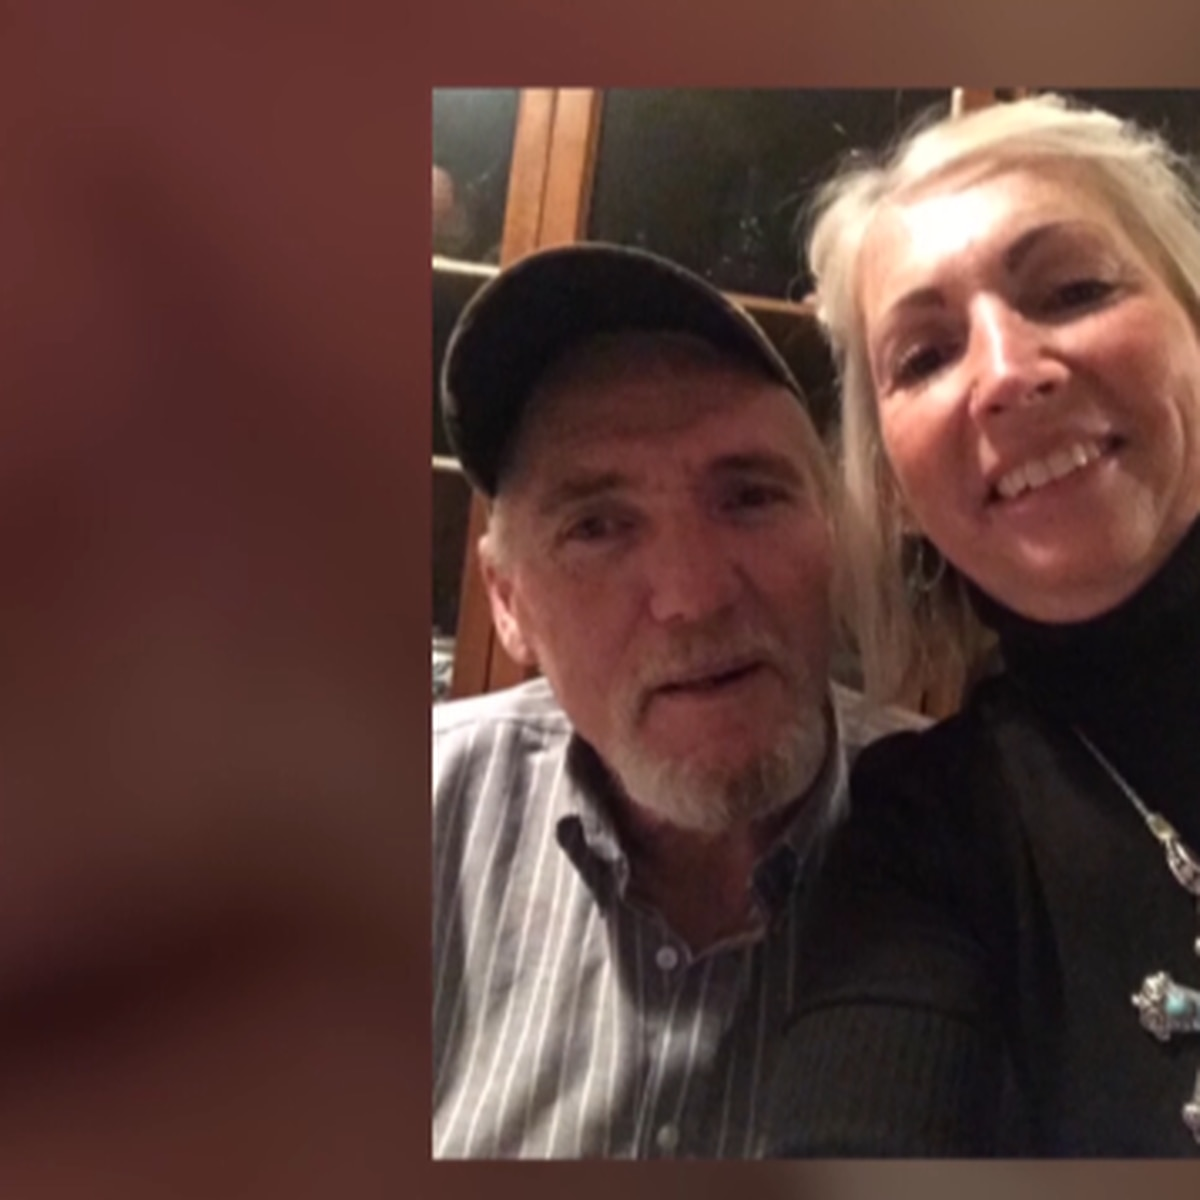 I Just Have To Pray Family Left Waiting As Clay County Murder Trial Delays